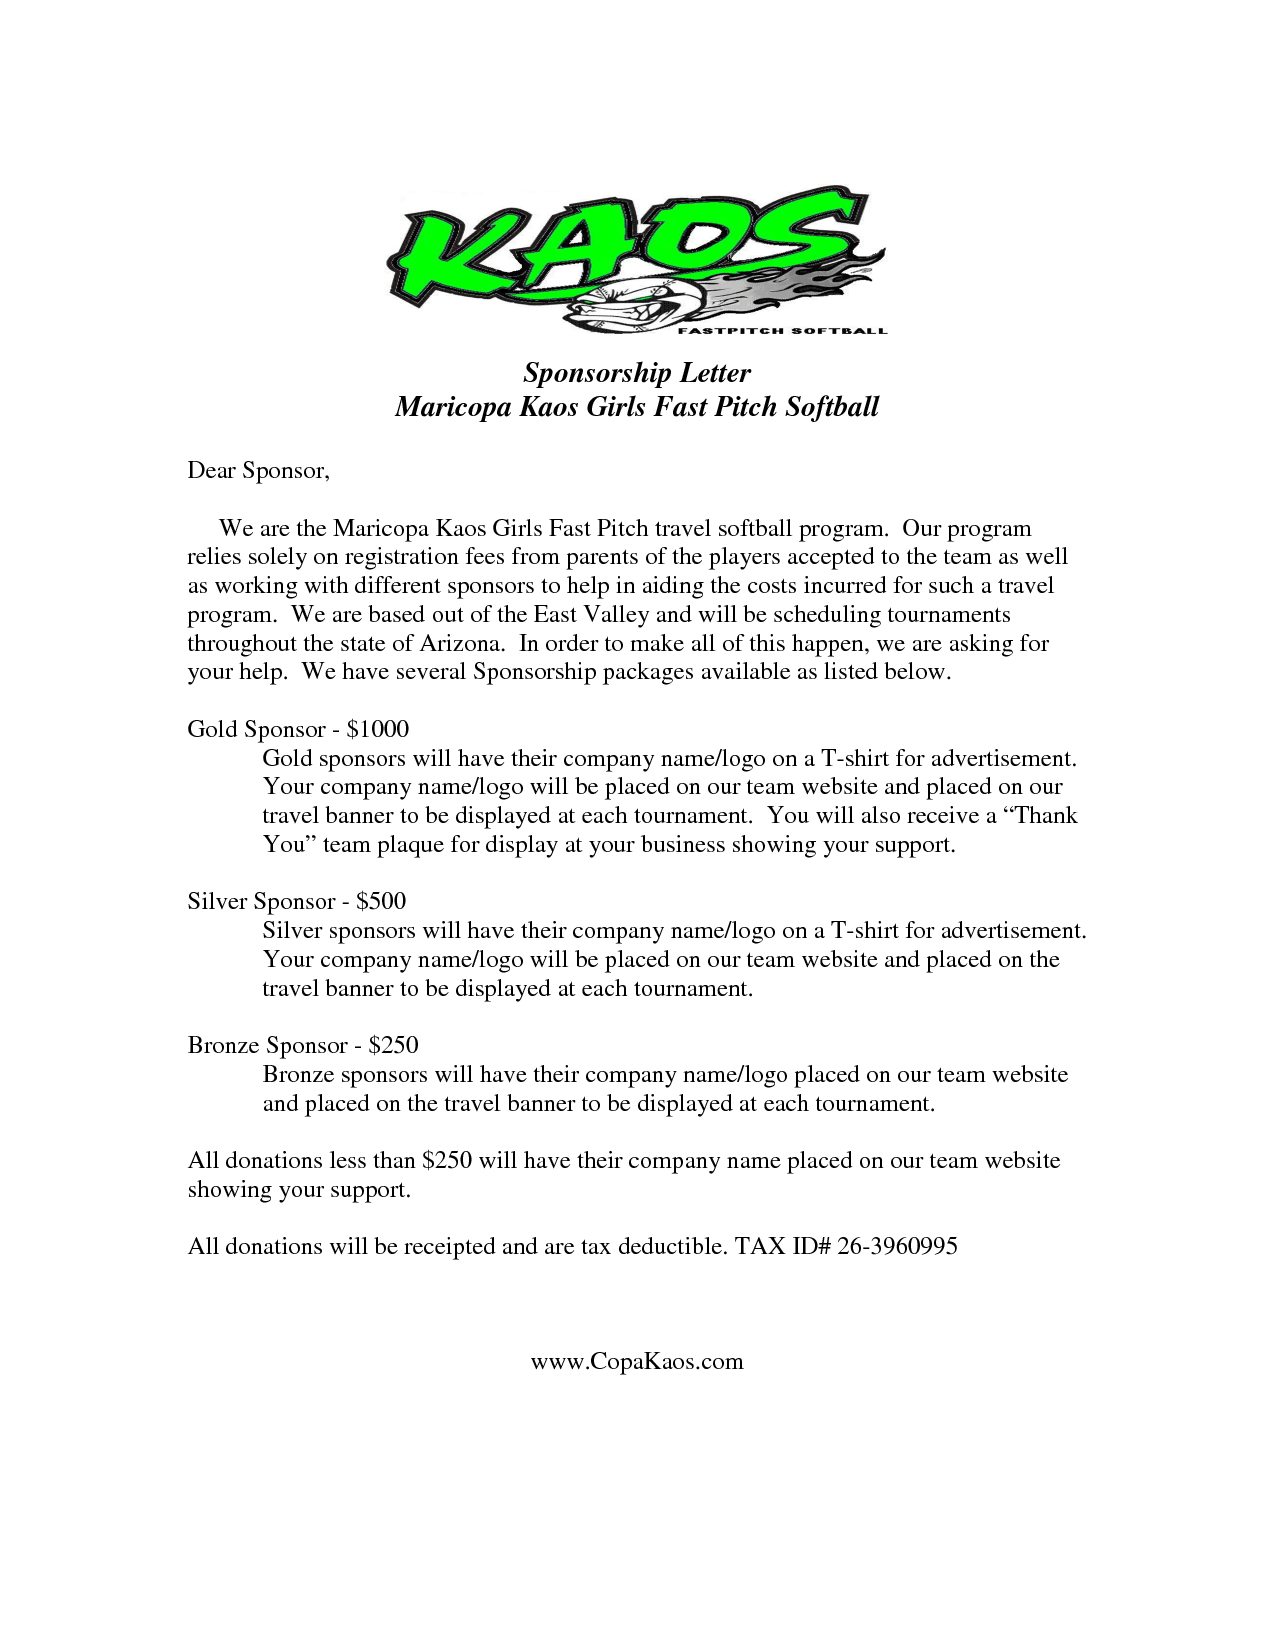 Fundraising Letter Template Non Profit organizations - Image Result for Sample Sponsor Request Letter Donation